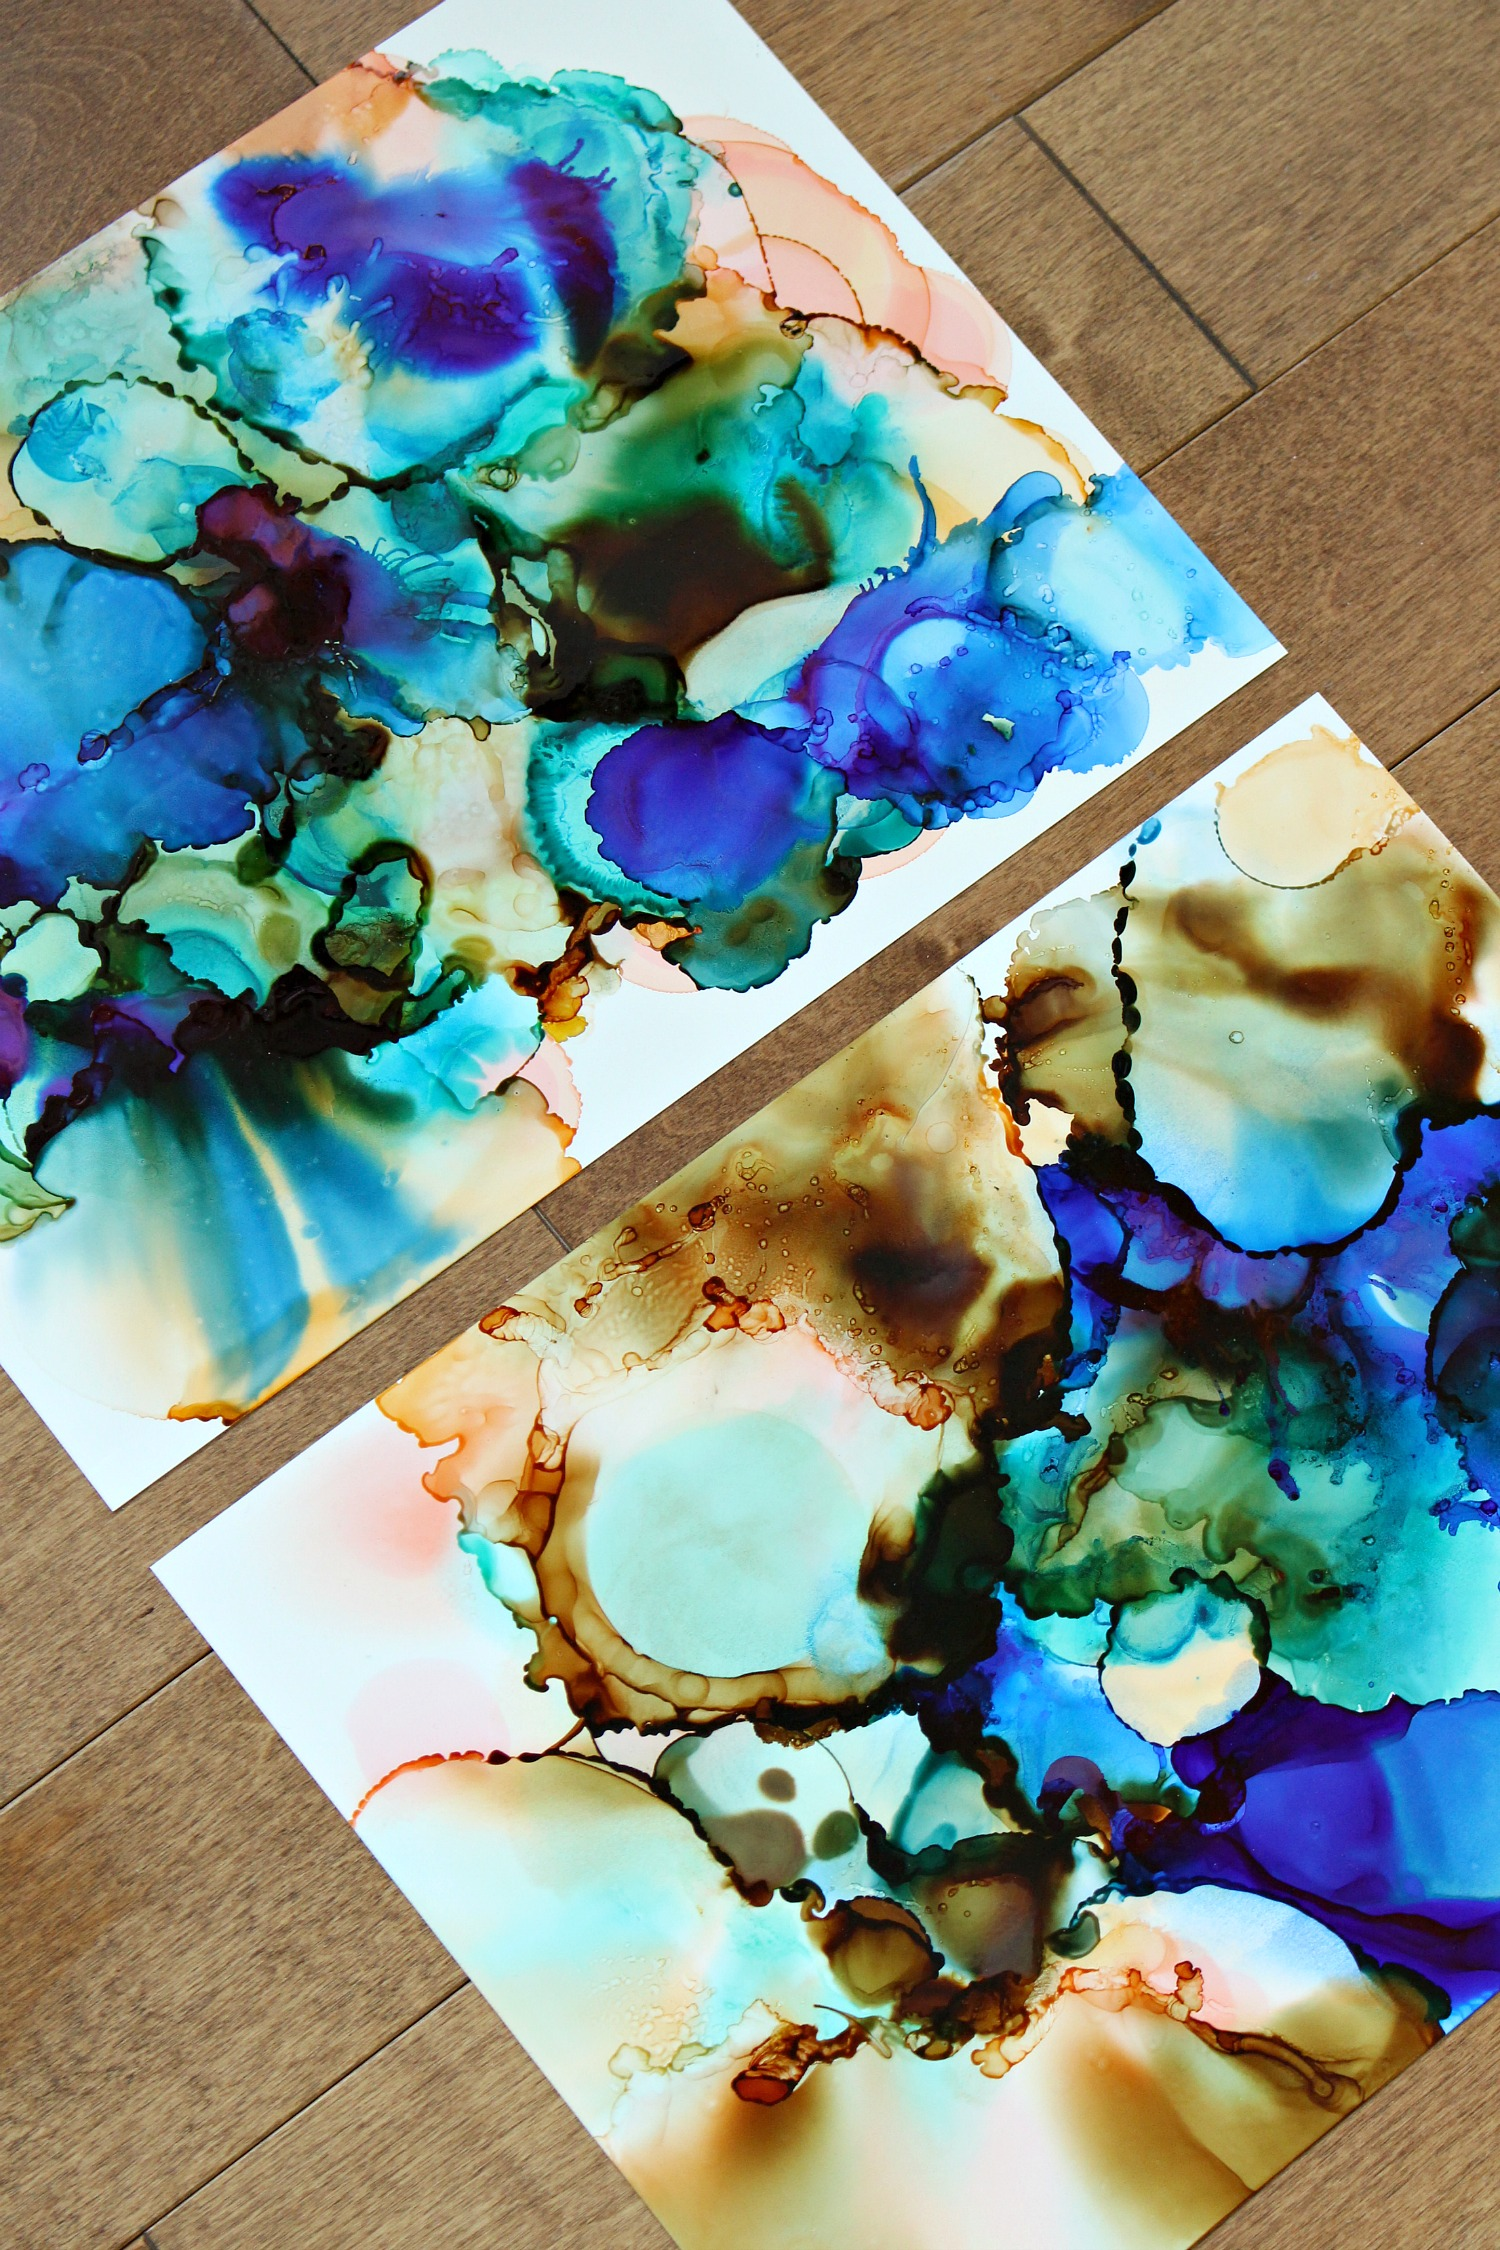 DIY Alcohol Ink Art